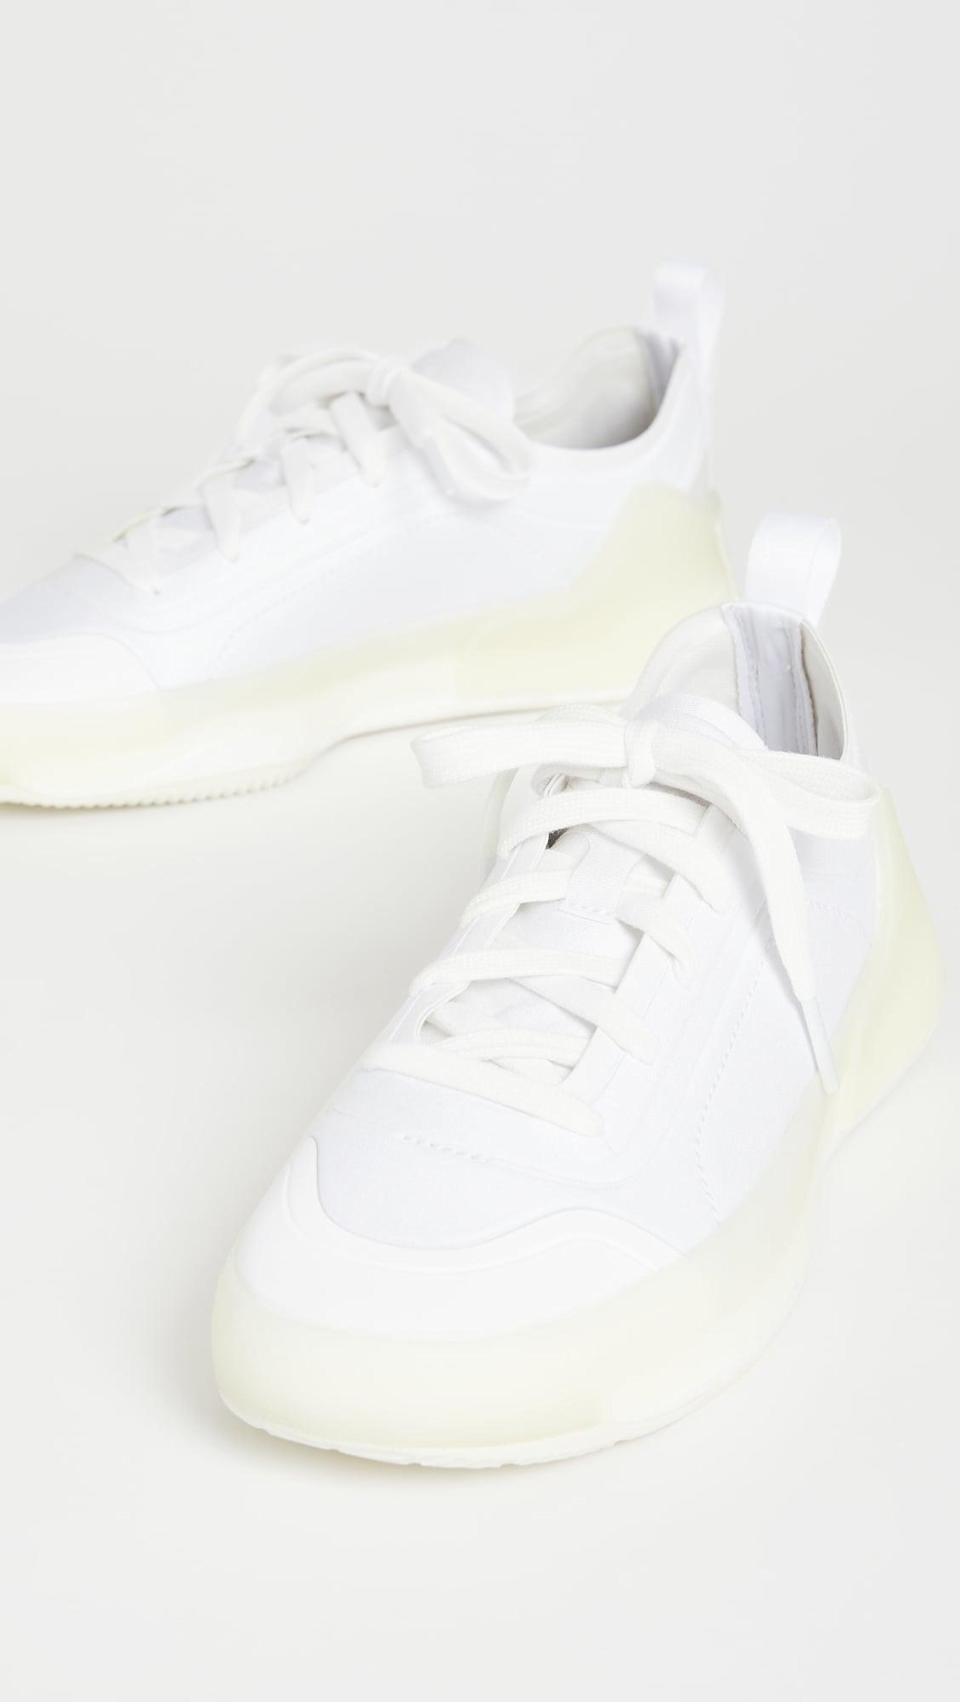 """<p>""""A pair of cool white sneakers is always fun to shop for. This season I want something a little big sporty and still cute enough to wear out. The <span>adidas by Stella McCartney Asmc Treino Sneakers</span> ($180) caught my eye with its cool silhouette and fun sole."""" - KJ</p>"""